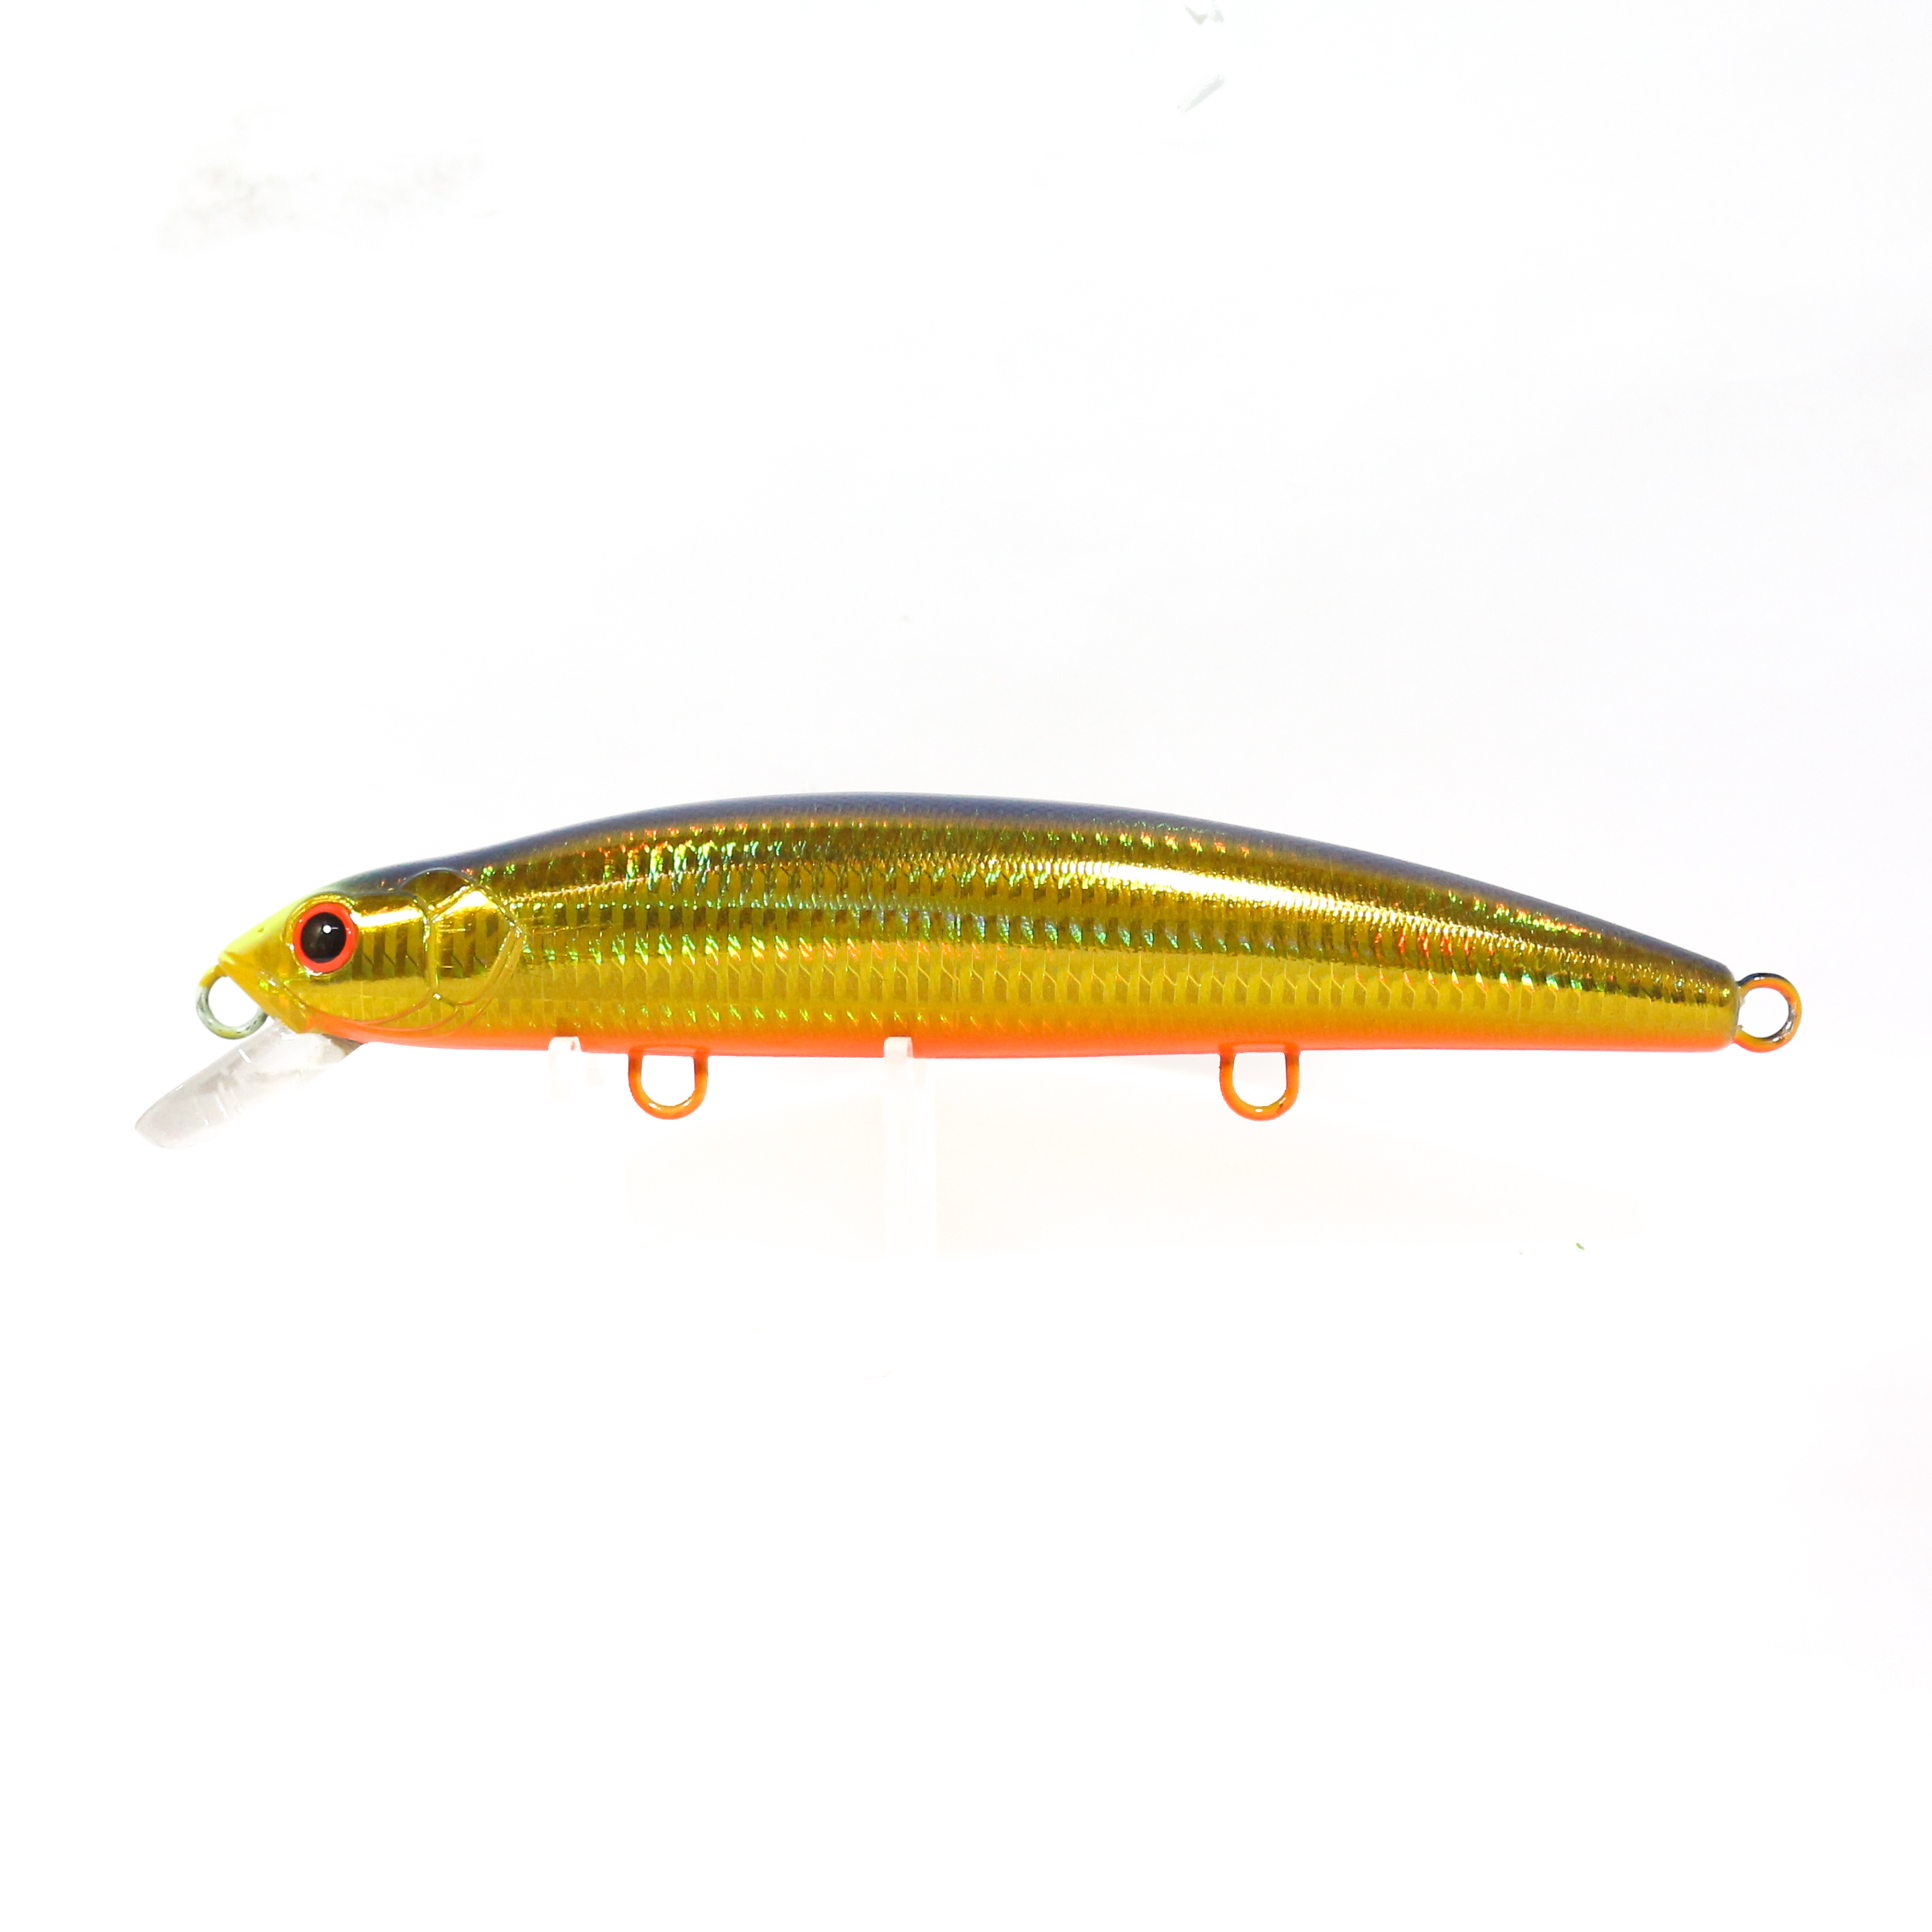 Mangrove Studio Seabass Ed 200 mm 86 grams Floating Lure Black Gold (1502)